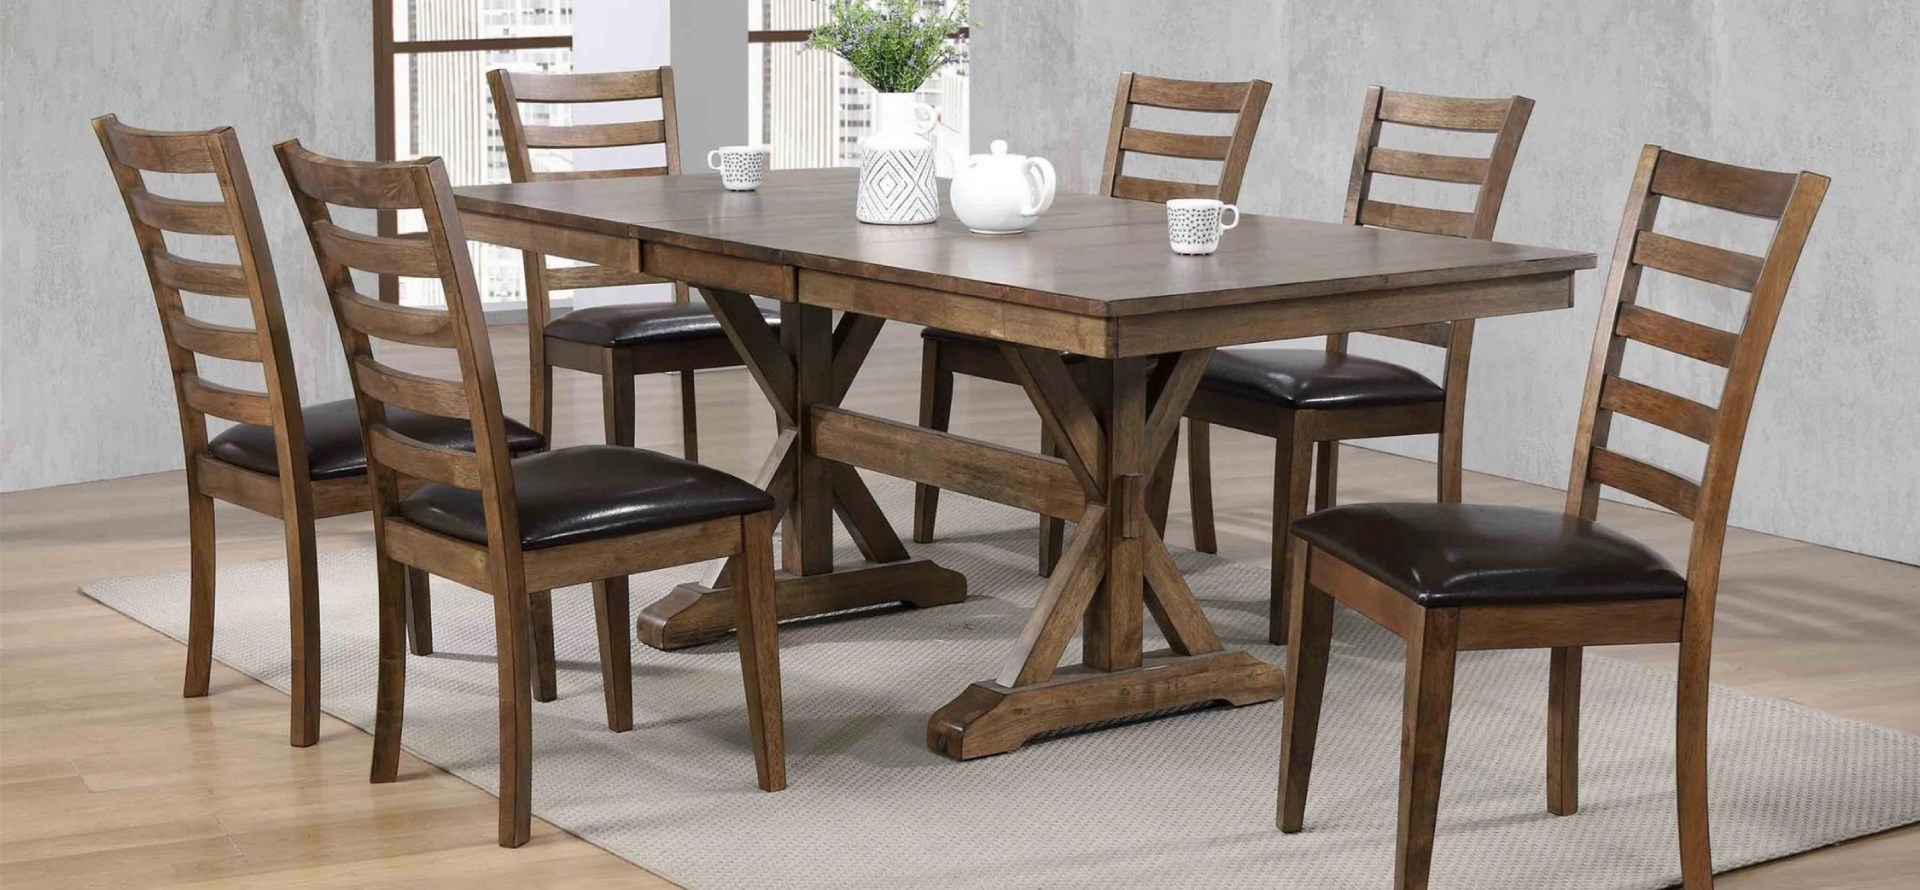 Dining Room Furniture At Bennett S Furniture And Mattresses Peterborough Campbellford Kingston Lindsay Haliburton Kawartha Lakes And Durham Region